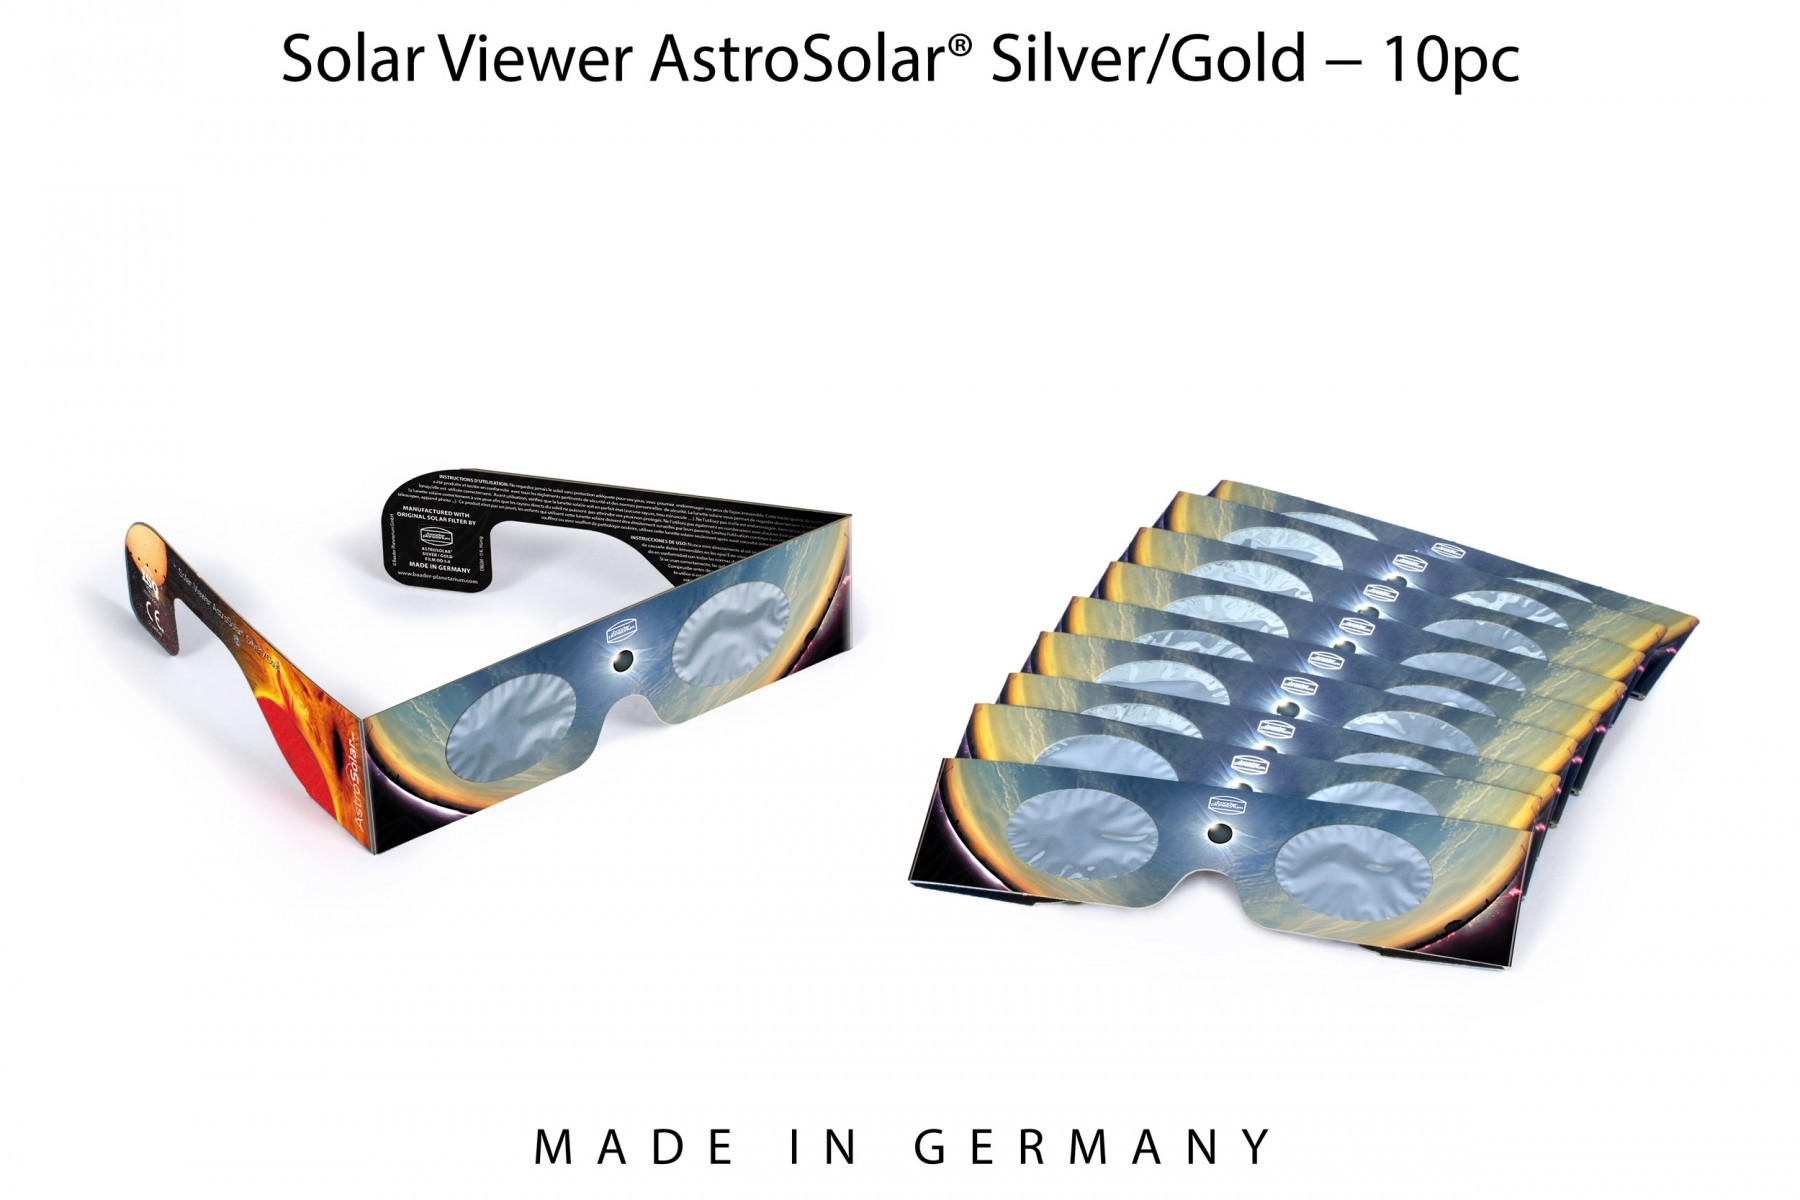 10 pcs Solar Viewer AstroSolar® Silver/Gold